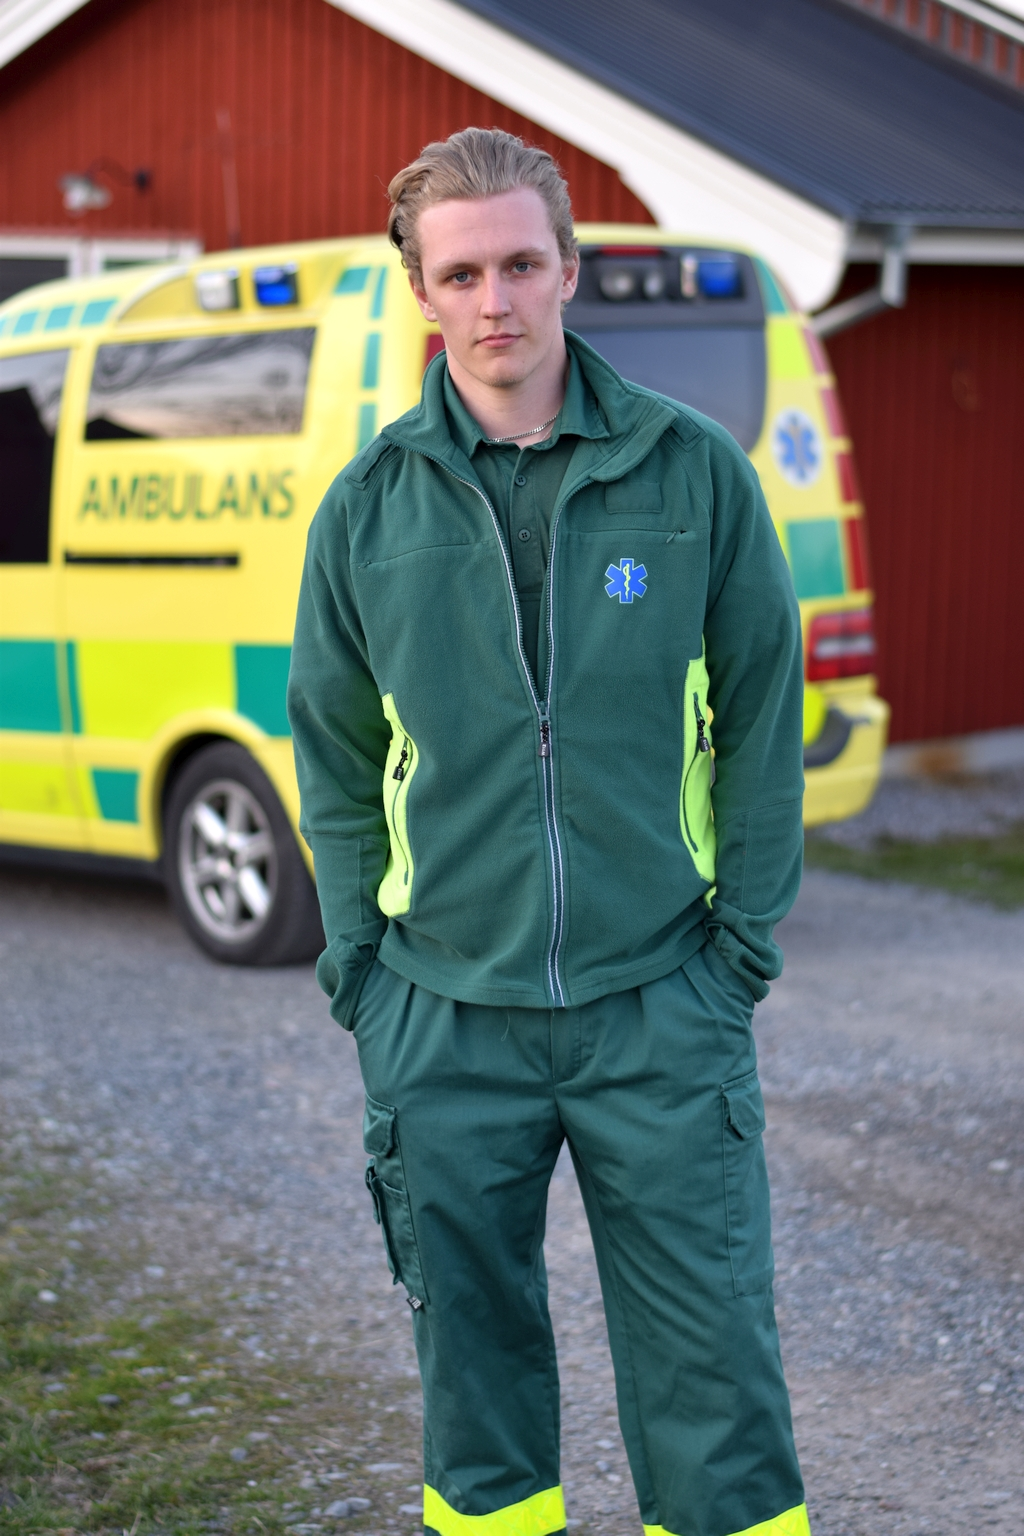 ambulans uniform